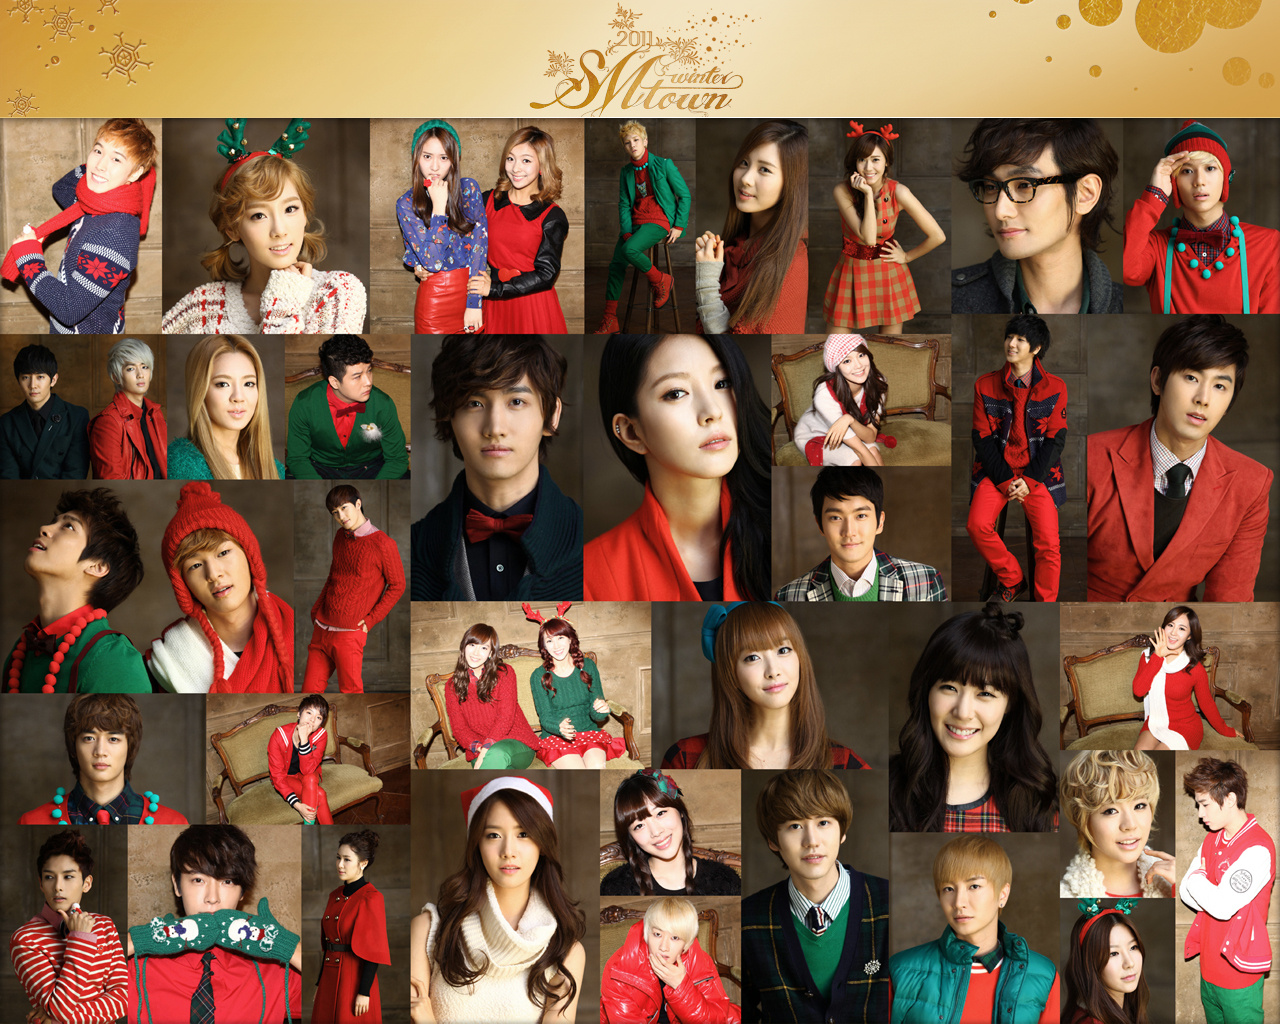 SNSD - SMTown 2011 Winter Album